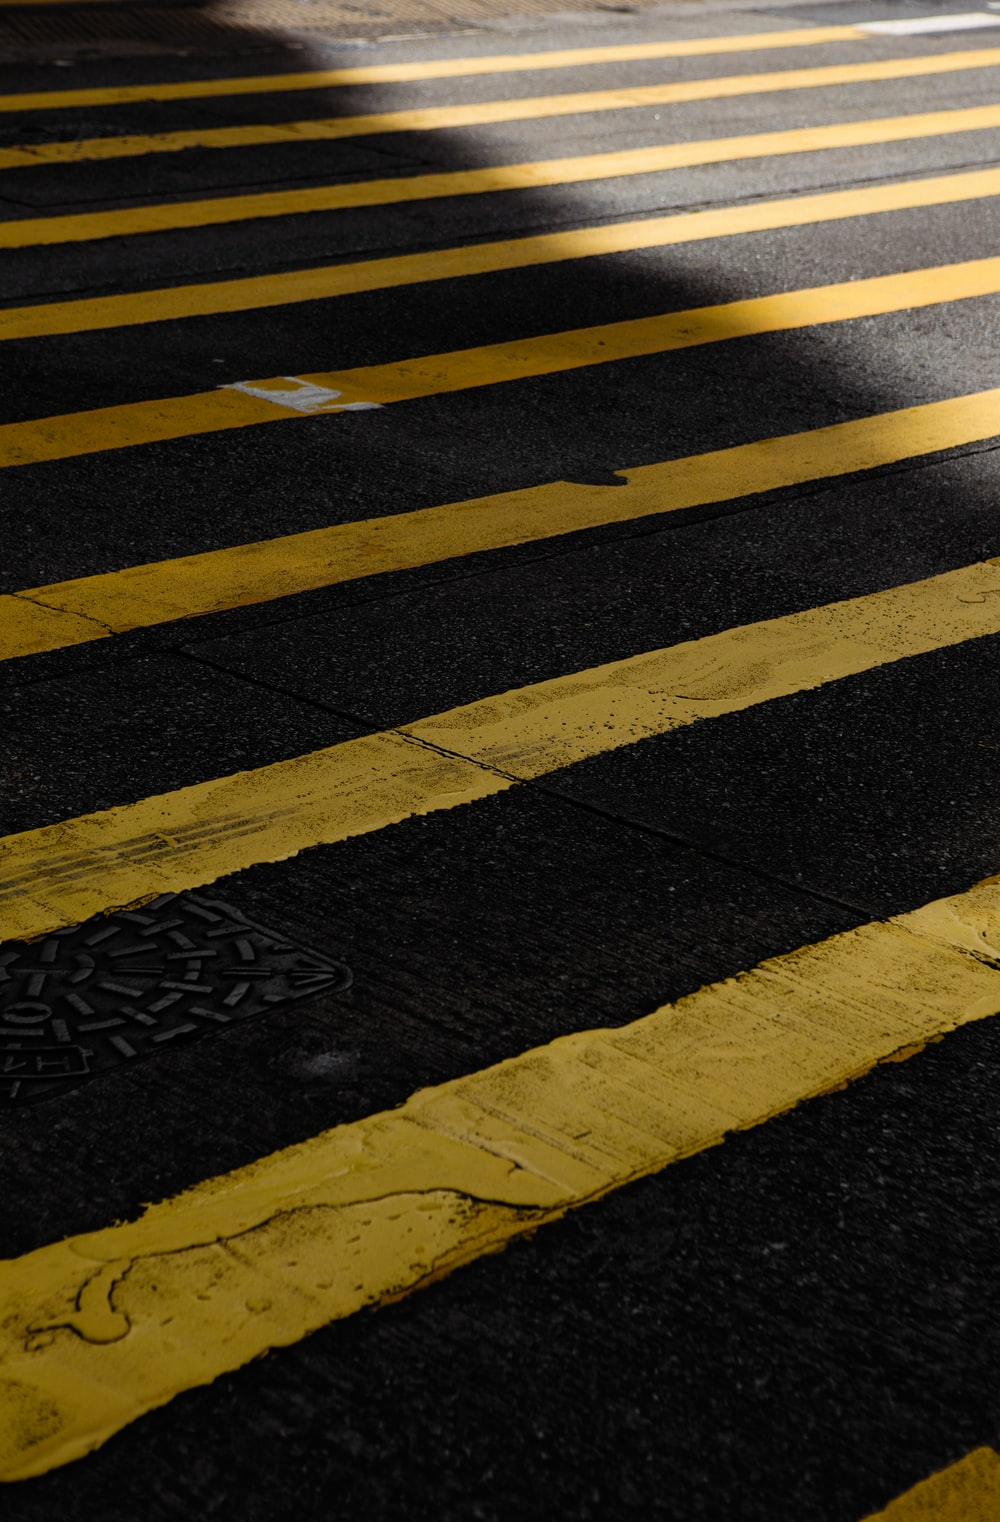 black and yellow pedestrial lane